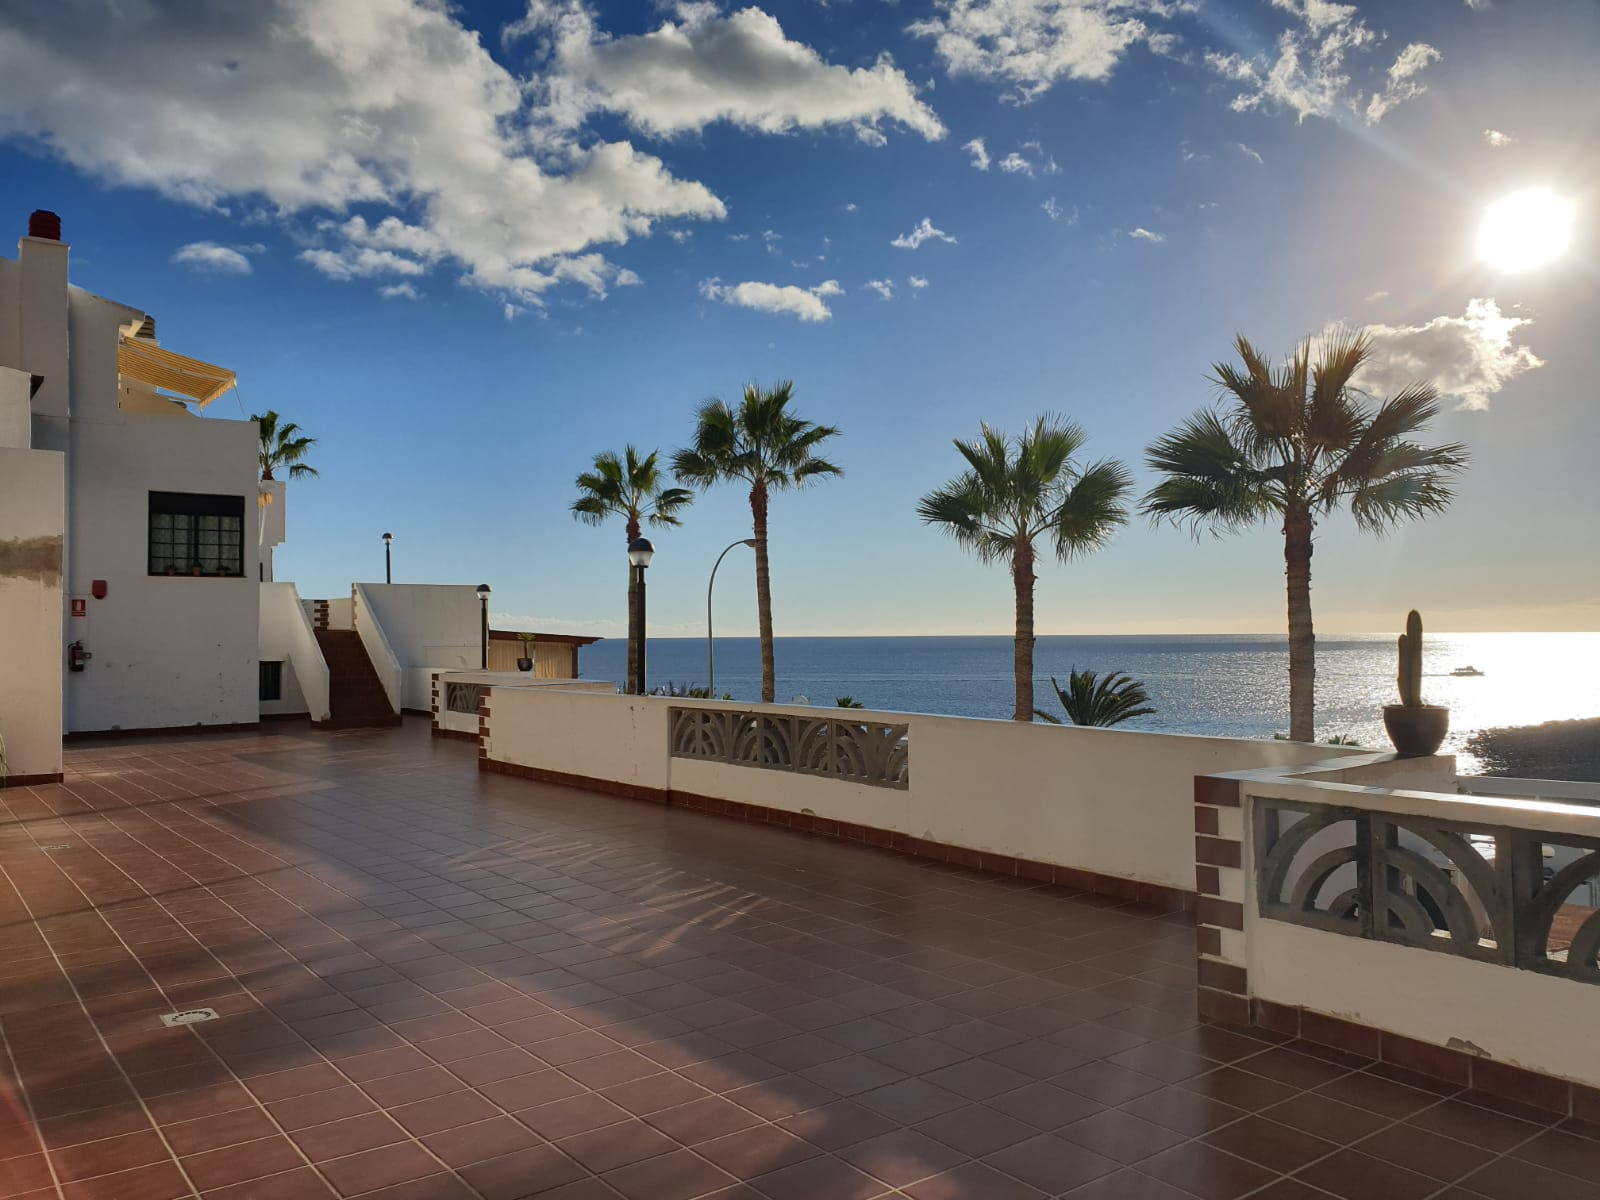 1 Bedroom Apartment with Stunning Views and Sunsets in Playa Del Cura